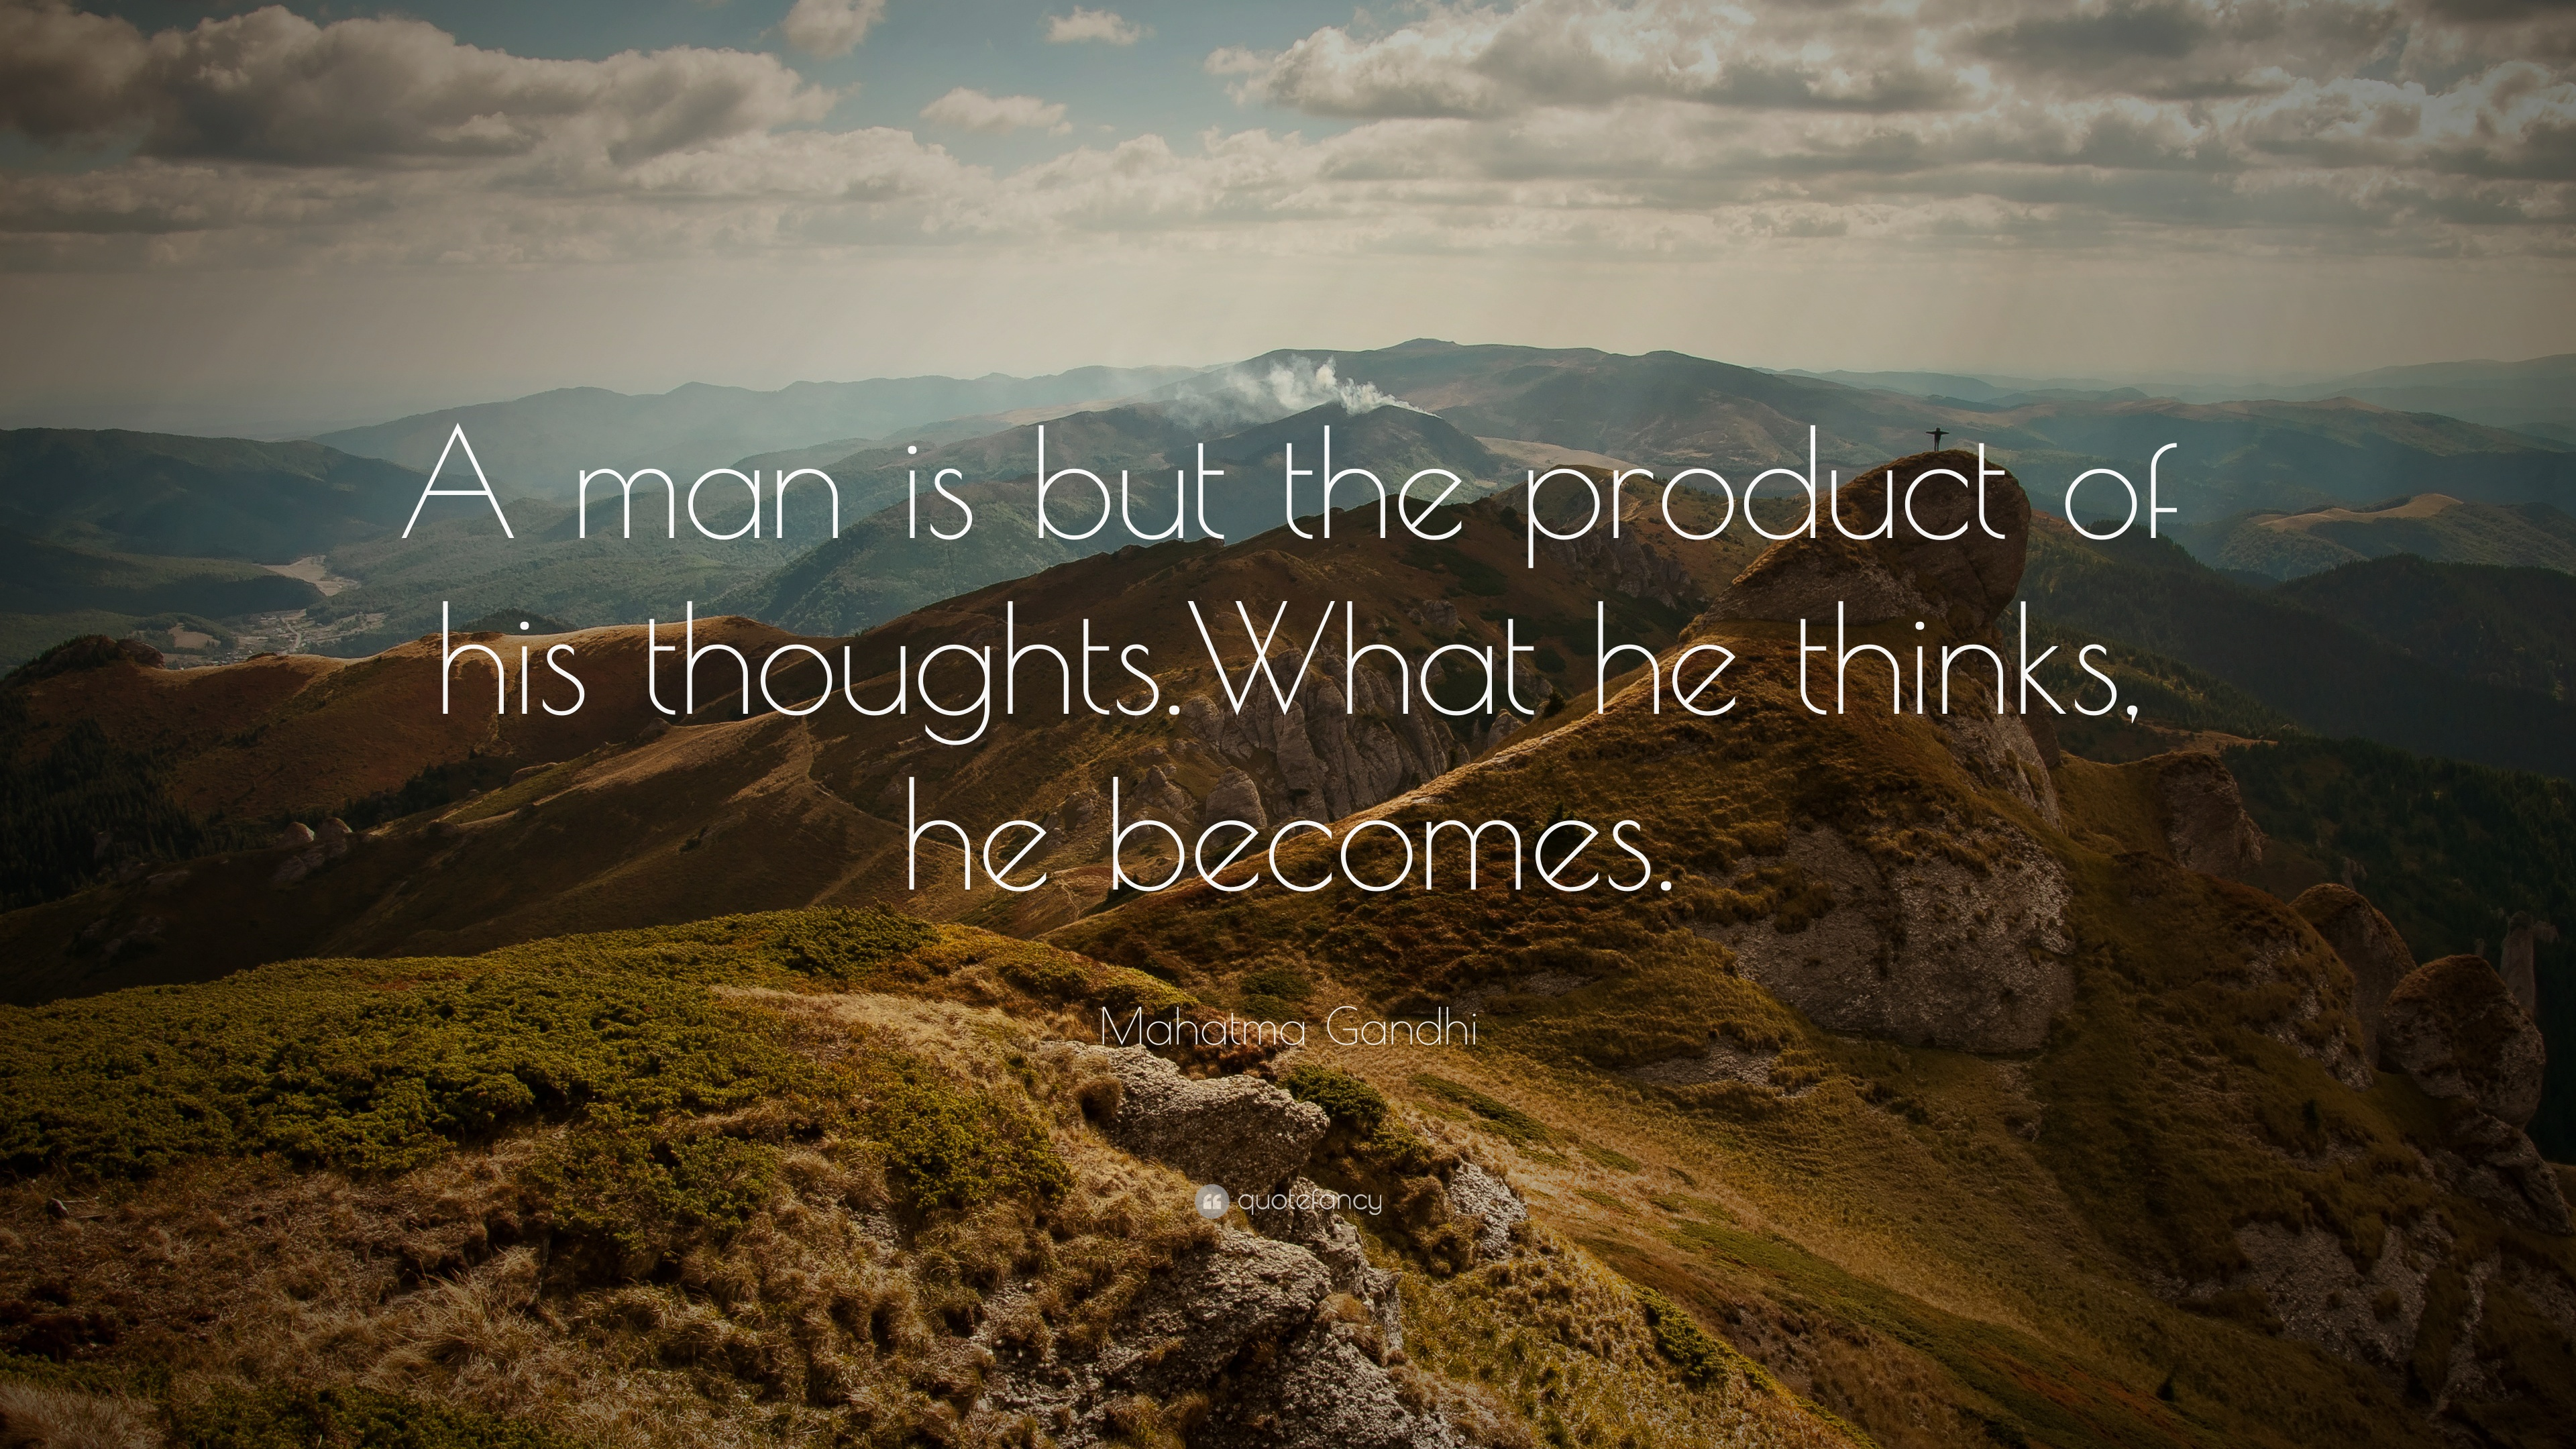 Mahatma Gandhi Quote A Man Is But The Product Of His Thoughts What He Thinks He